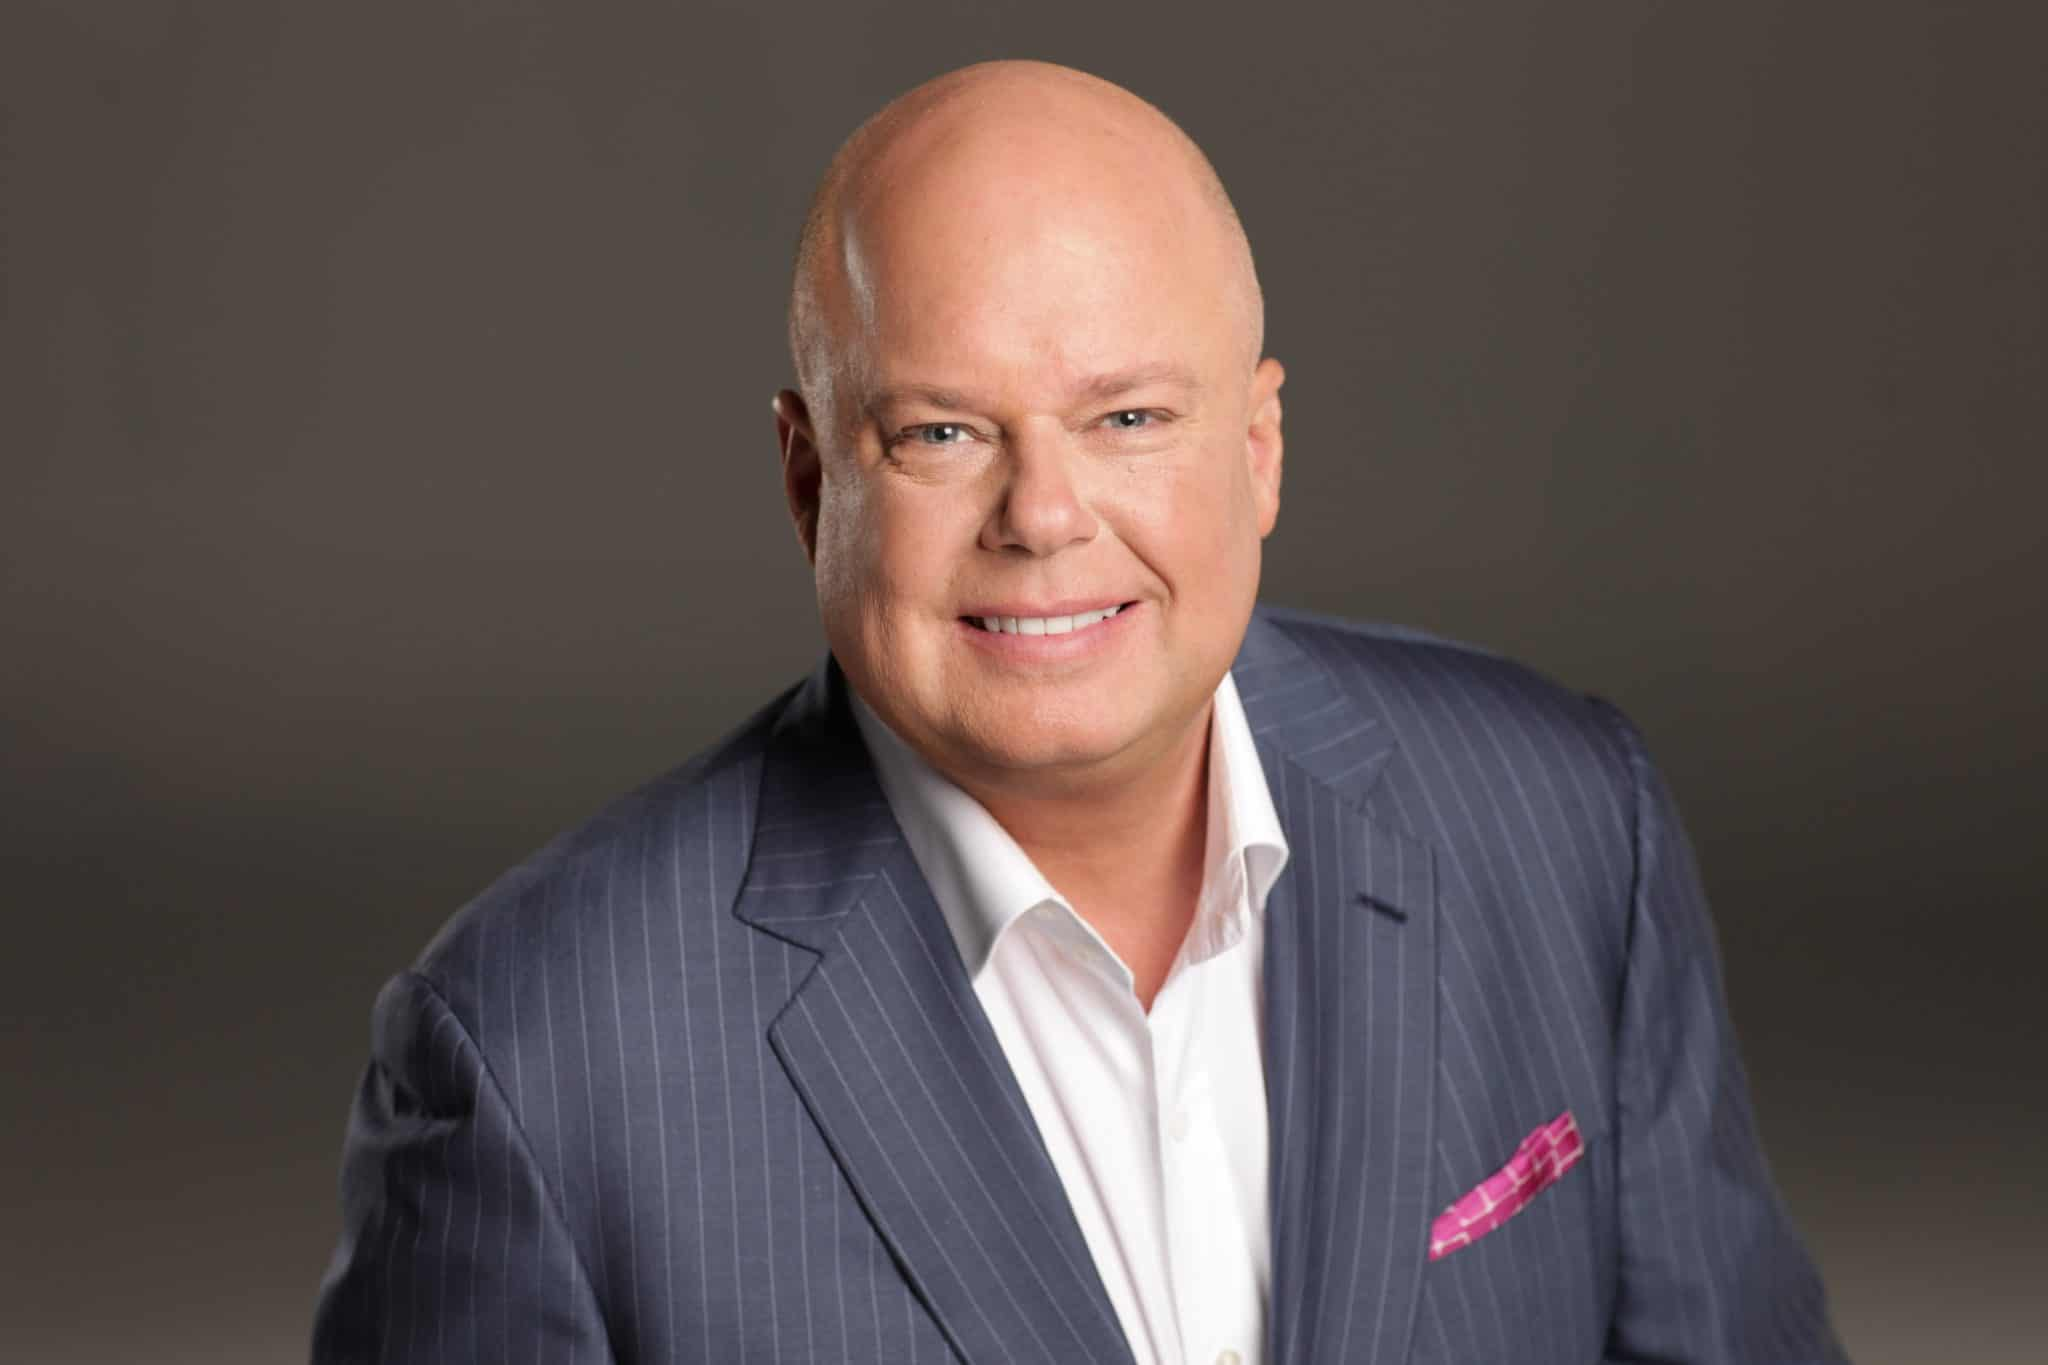 Network Marketing And Mlm Training Tips By Coach Eric Worre